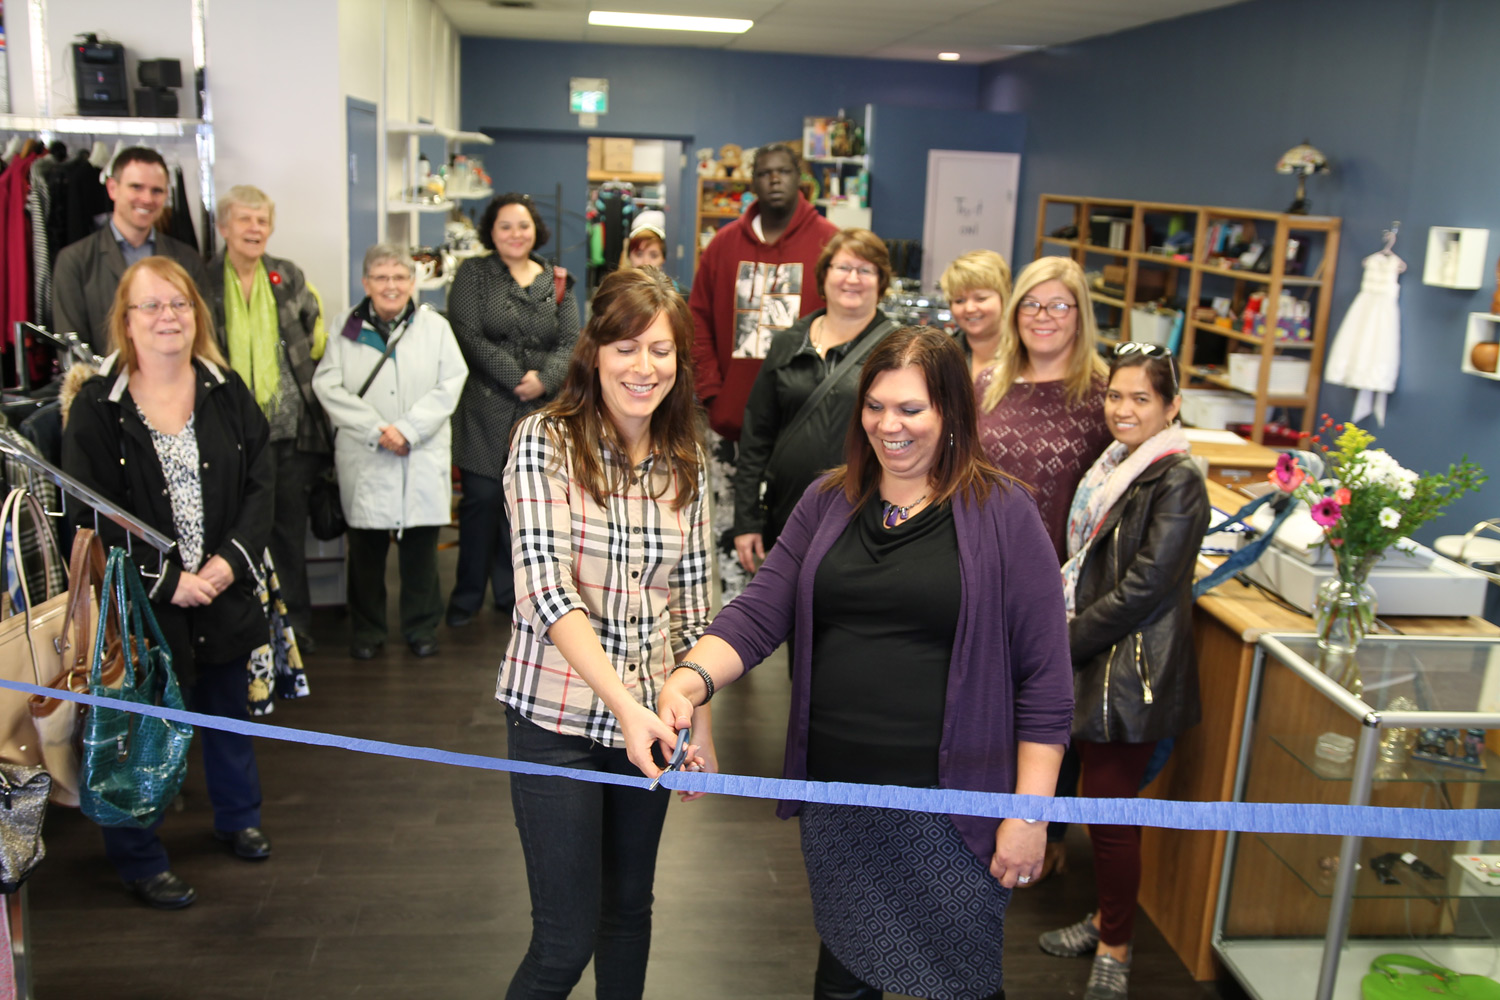 Thrift Shop coordinator Kristy Muckosky, left, and PFSS executive director Rhonda Elias-Penner cut a ribbon to mark the shop reopening.